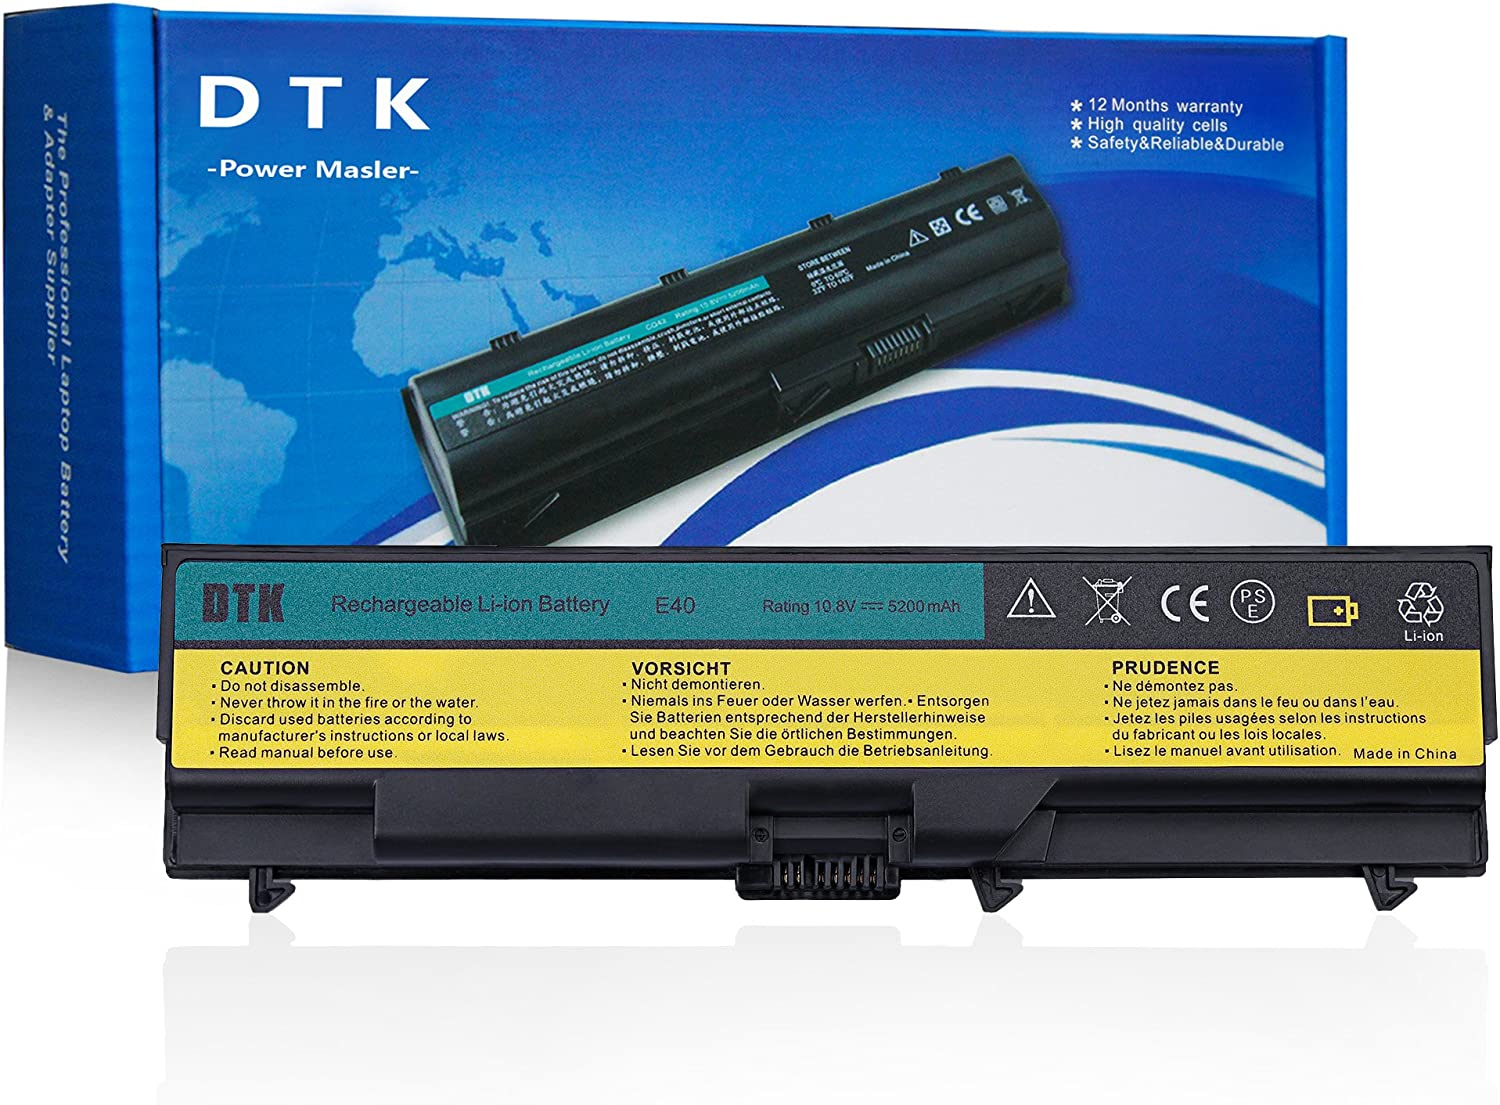 Dtk Laptop Battery for Lenovo Thinkpad E40 E50 Edge 0578 E420 E425 E520 E525 L410 L412 L420 L421 L510 L512 L520 Sl410 Sl410k Sl510 T410 T410i T420 T510 T510i T520 W510 W520 Notebook Battery